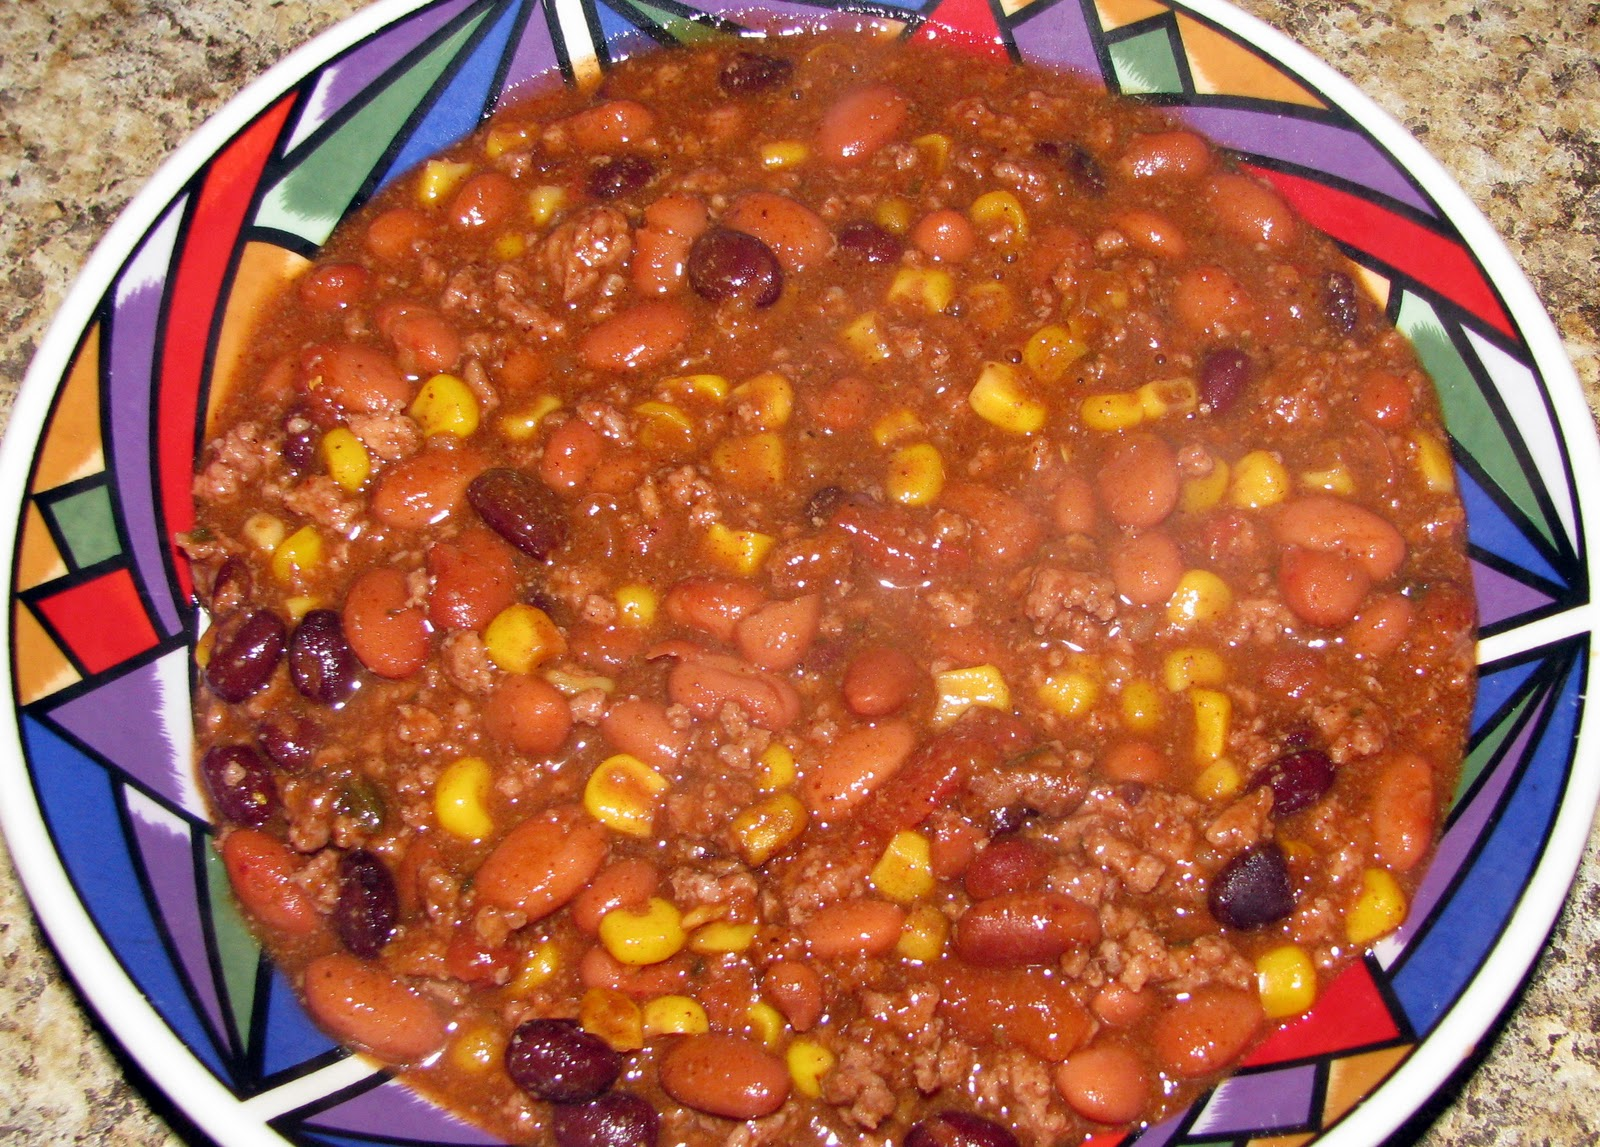 Taco Soup: CrockPot Recipe (Weight Watchers Points Included)